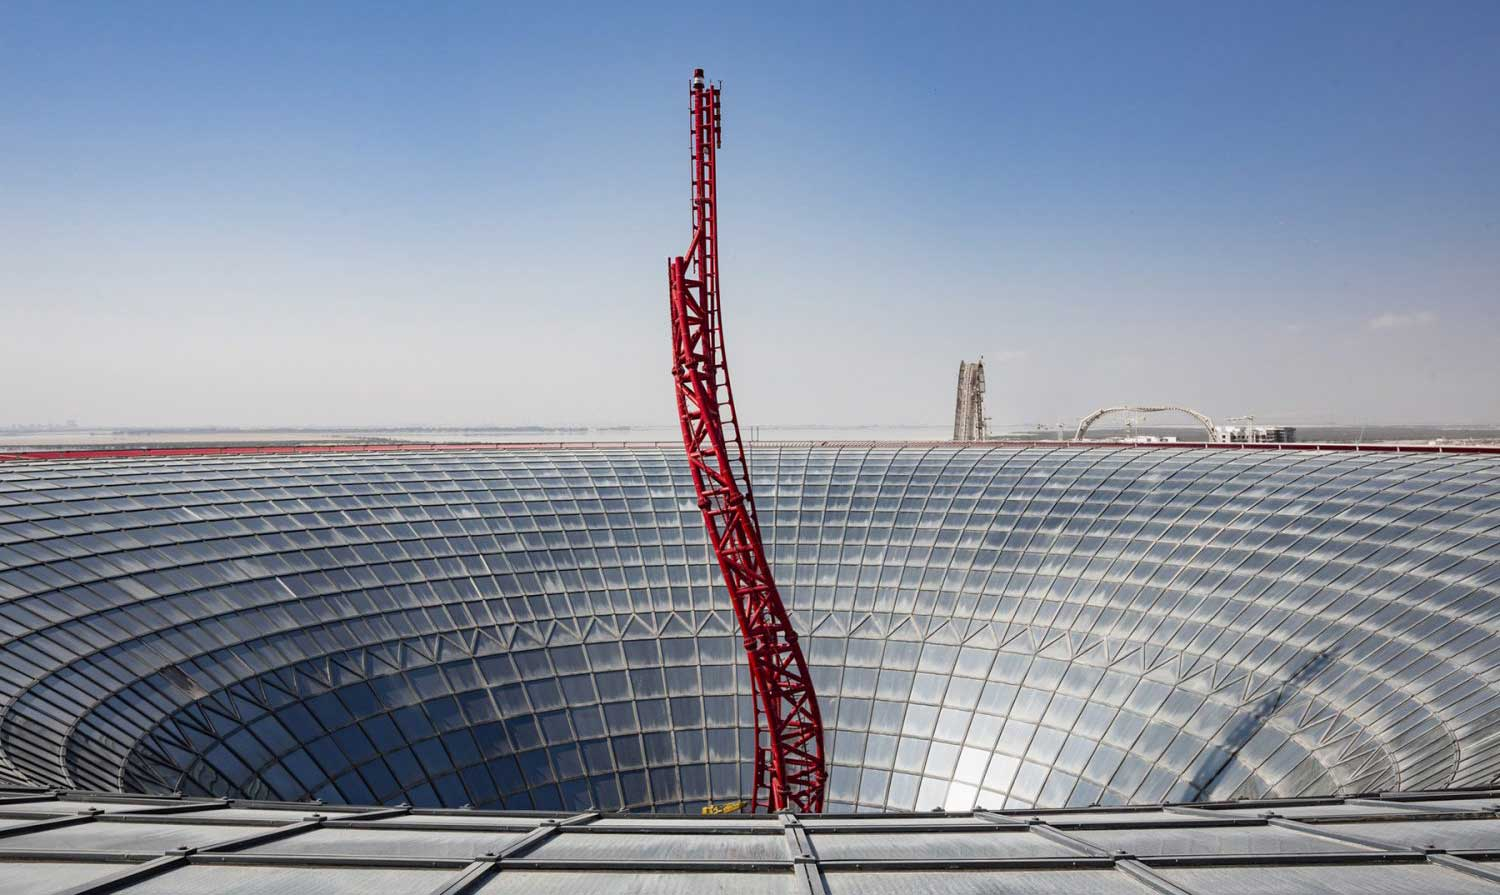 turbo track rollercaoster ferrari world abu dhabi roof